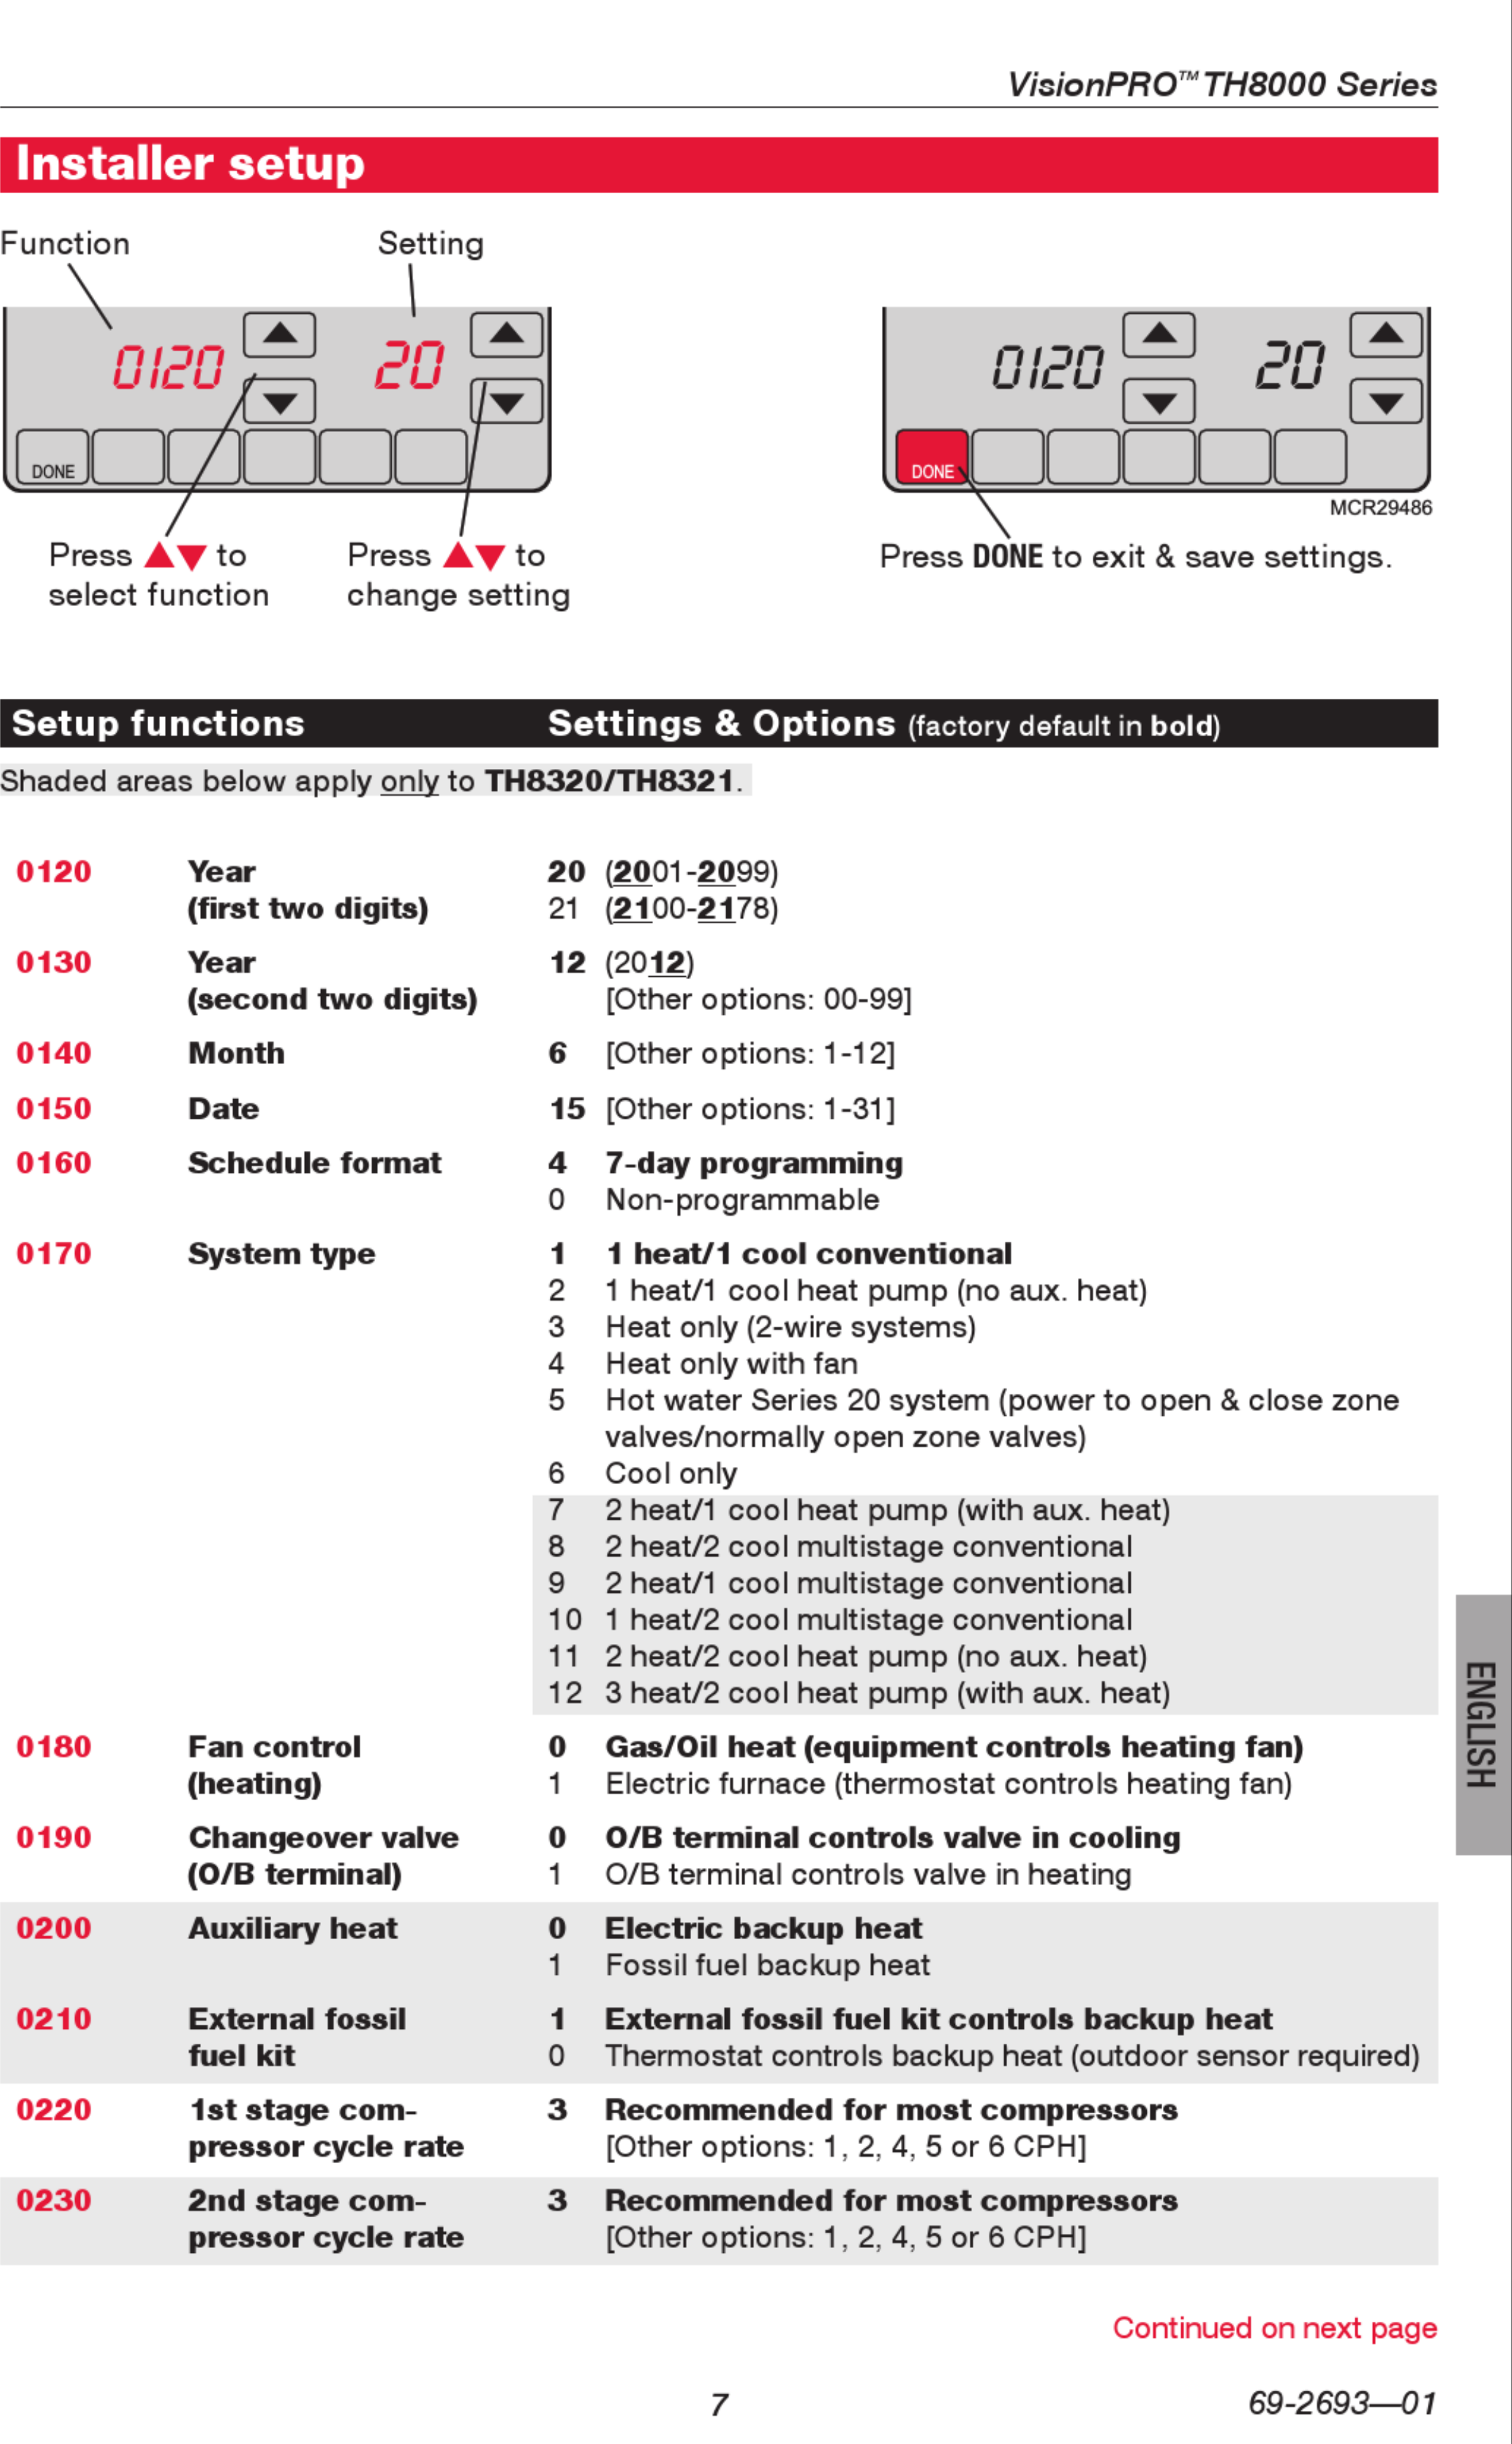 Honeywell Visionpro Th8000 Series Installation Manual 1003127 User Wiring Diagram Page 7 Of 12